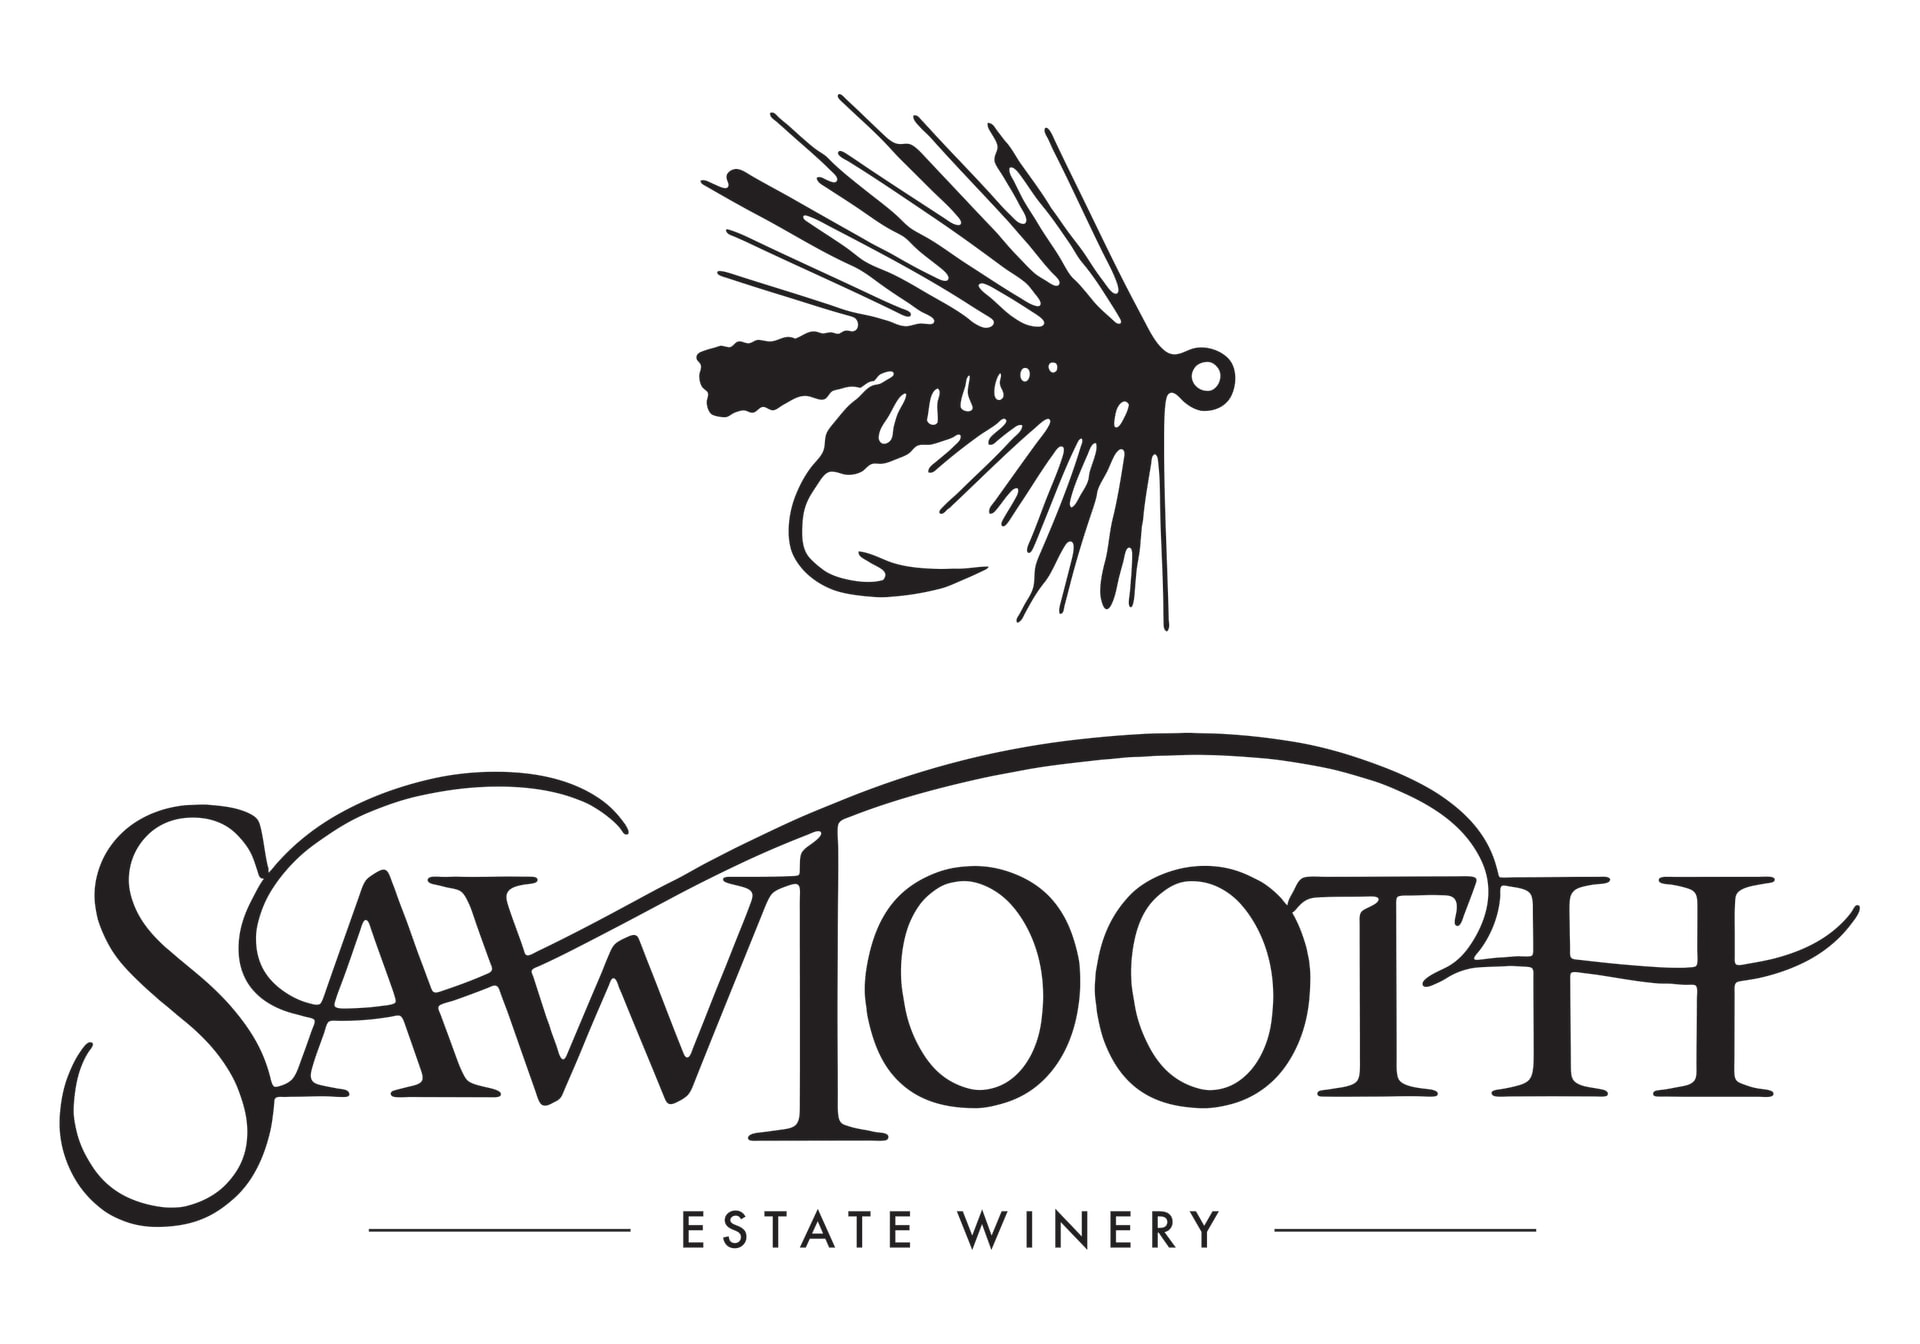 Saw Tooth Estate Winery Logo